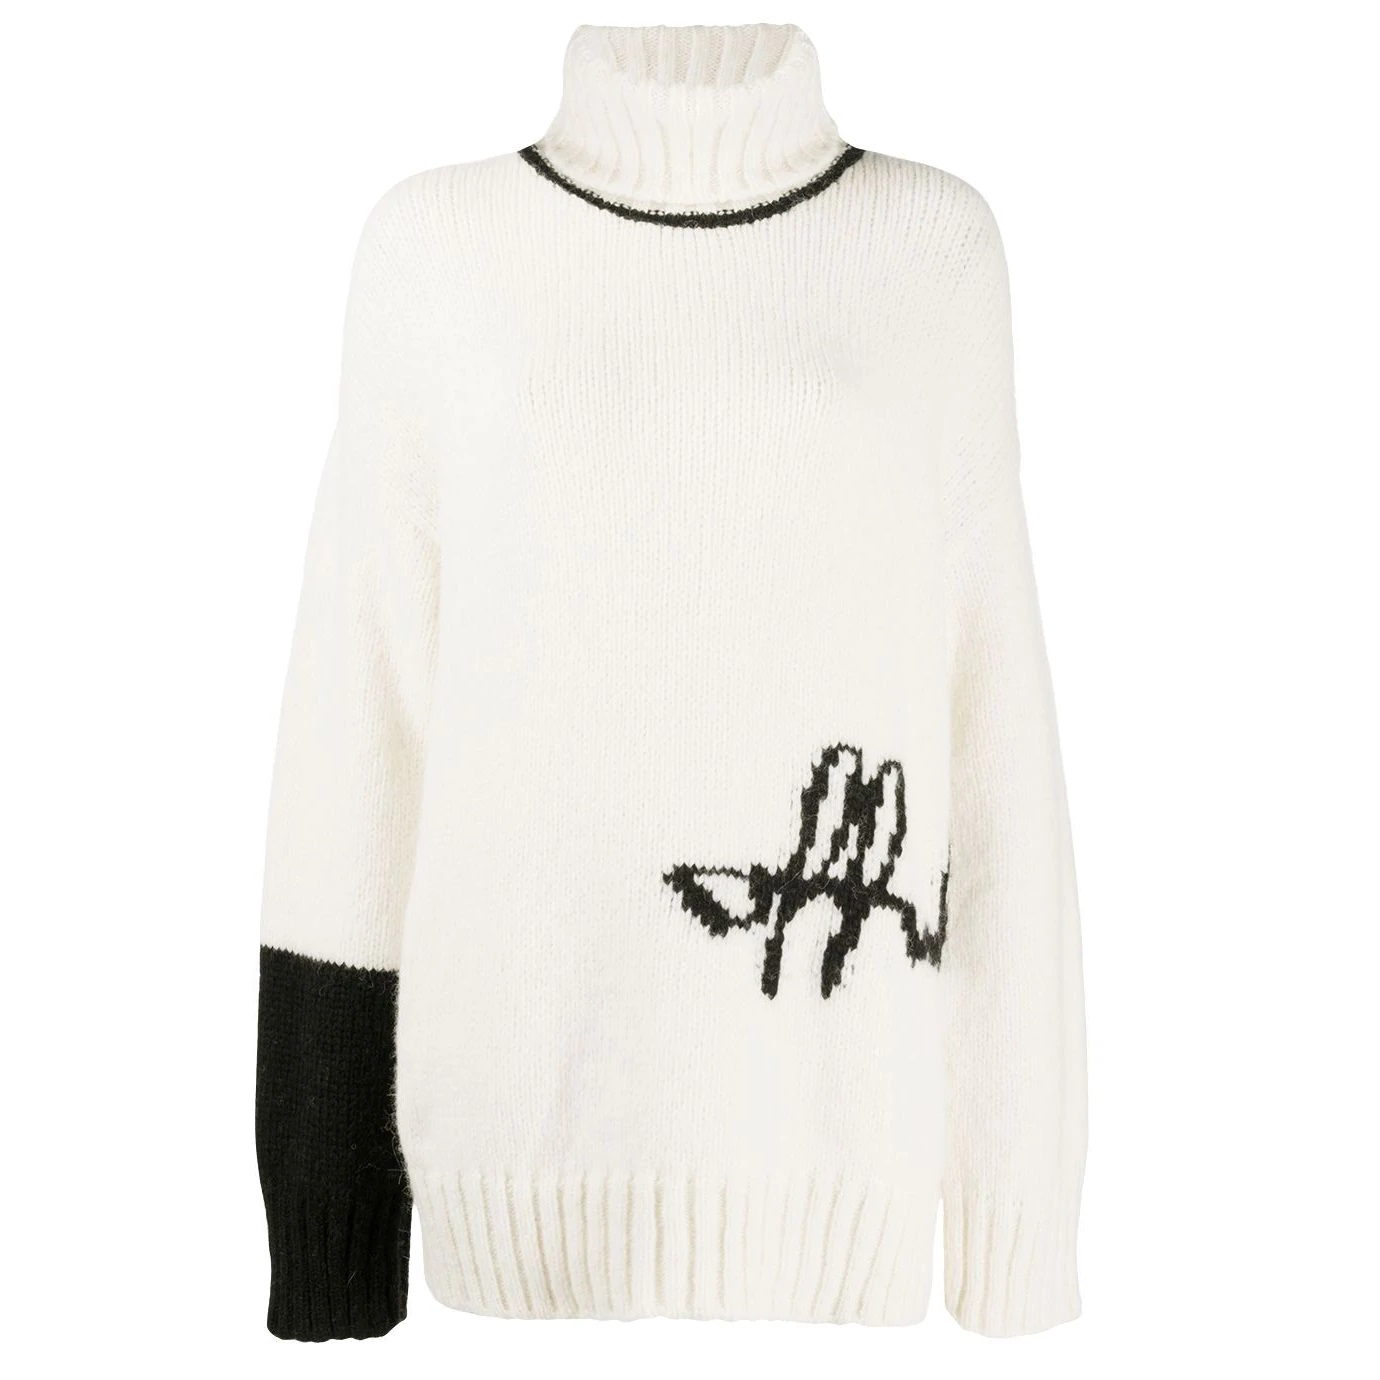 FARFETCH: 50% OFF Off-White Intarsia-knit Logo Jumper